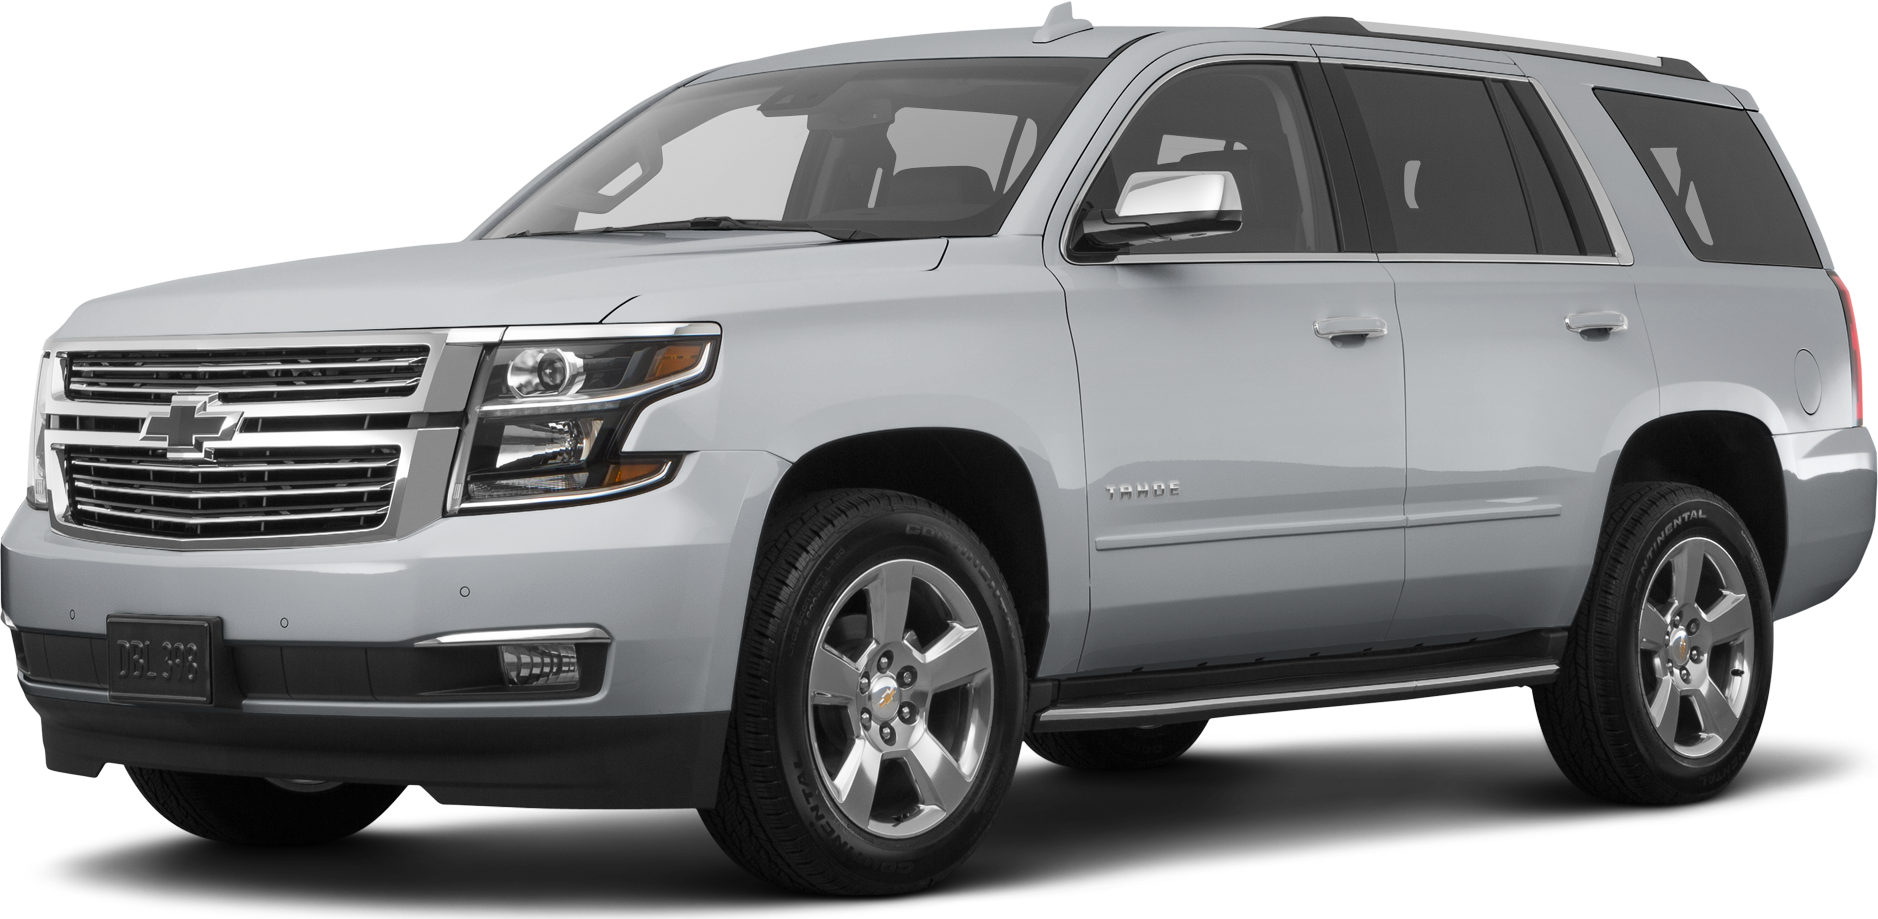 2017 Chevrolet Tahoe Values Cars For Sale Kelley Blue Book